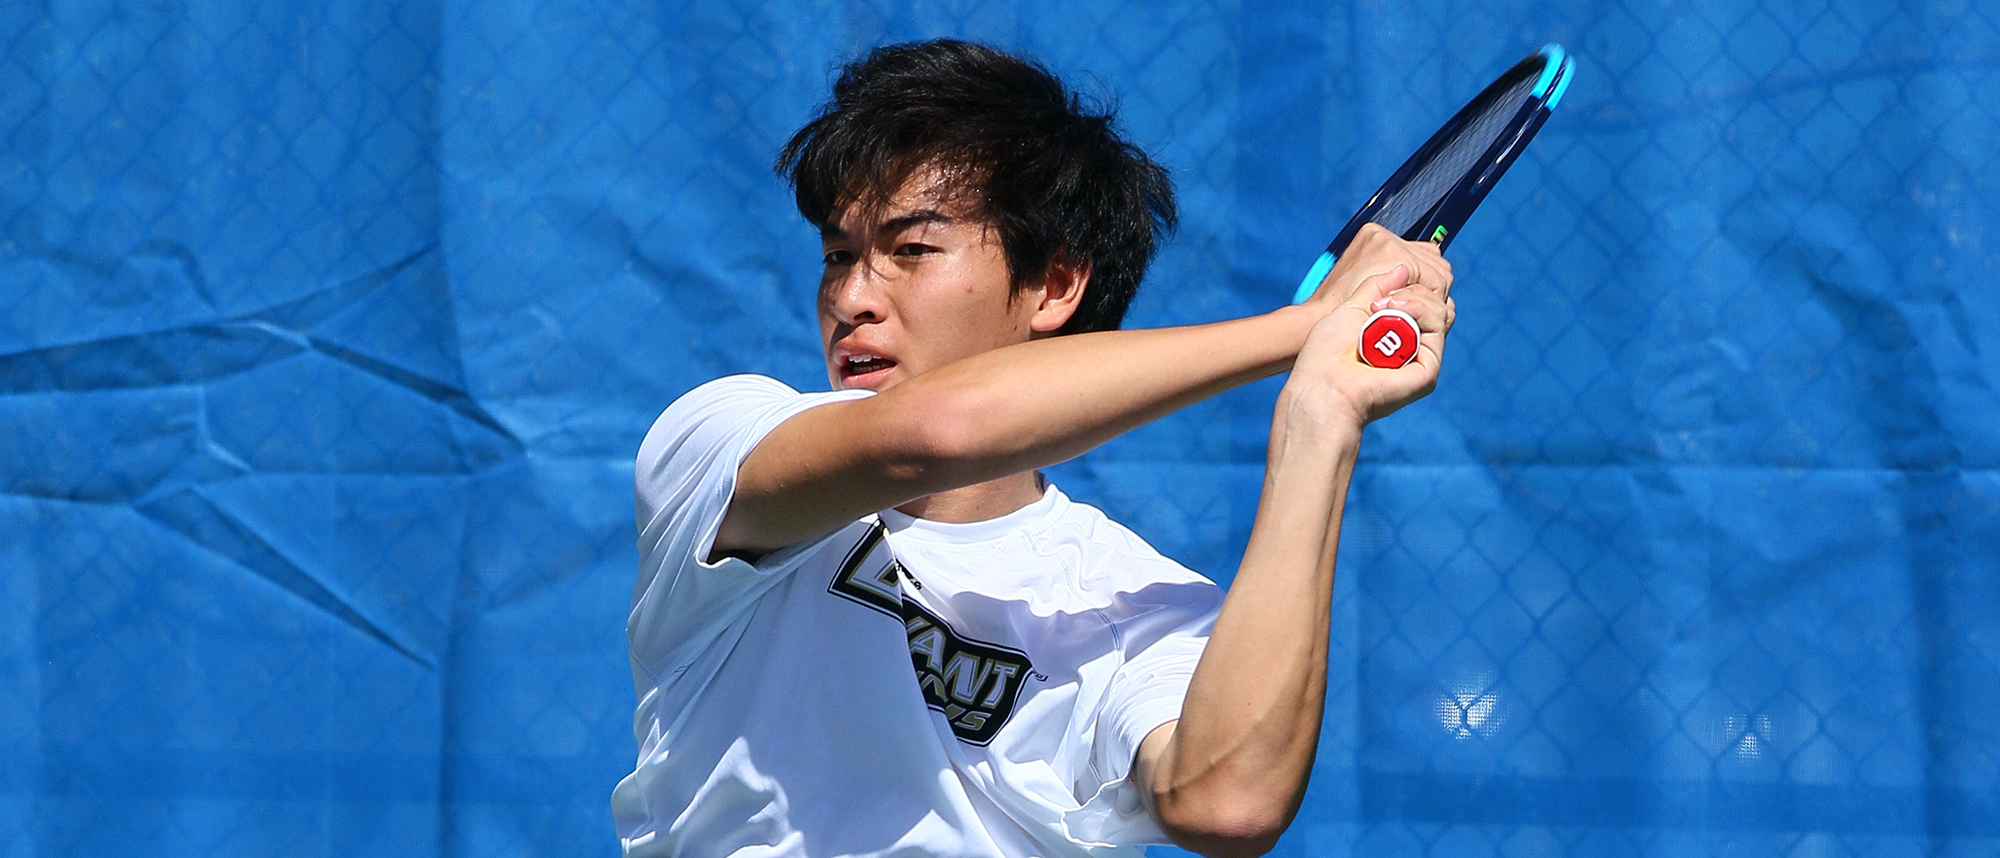 Kuhar, Dong become first ranked doubles team in NEC history